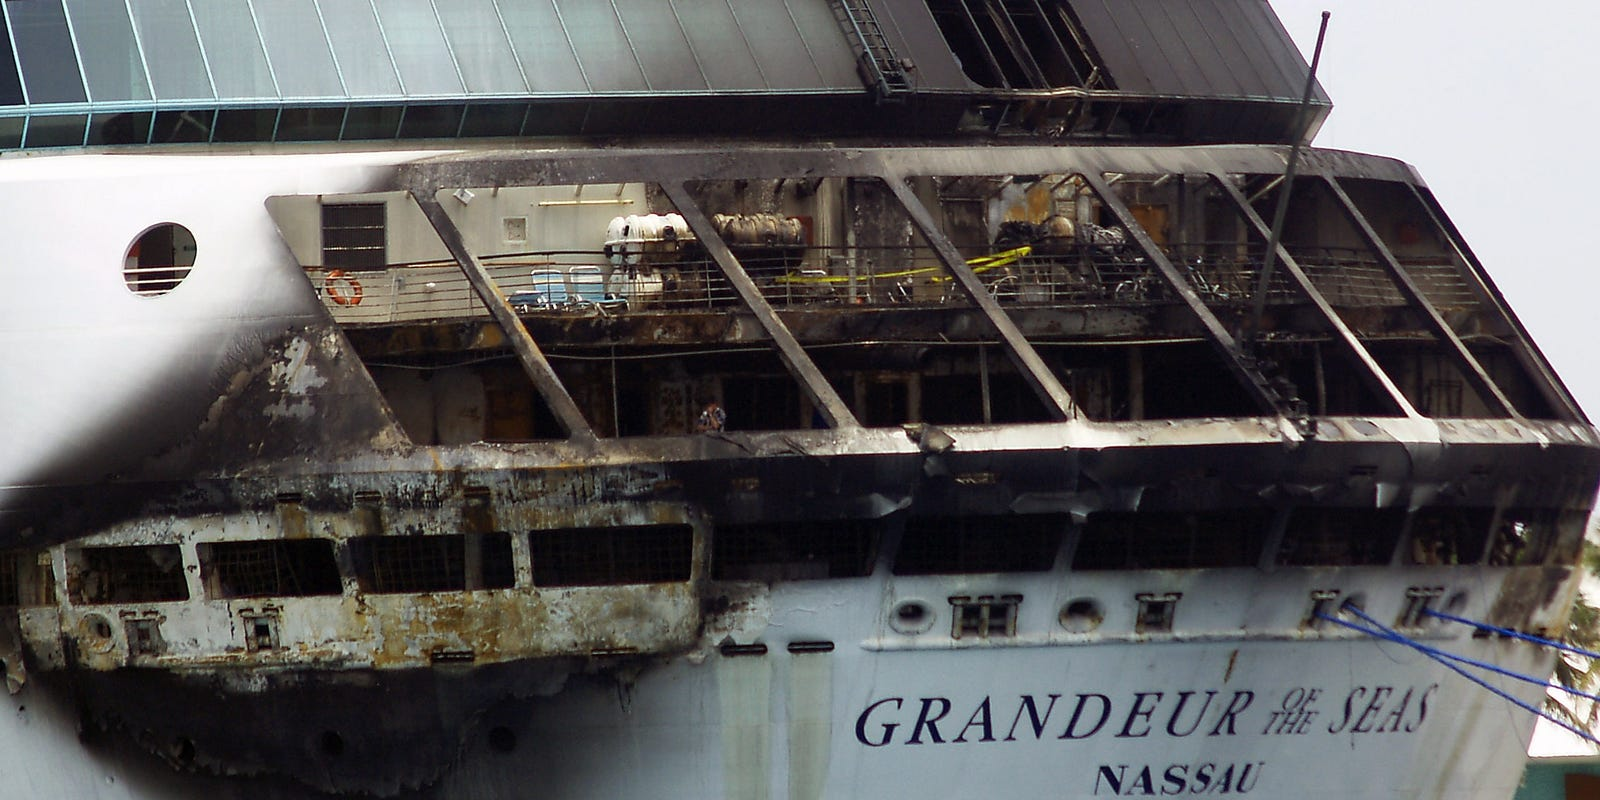 Cause Of Cruise Ship Fire Remains A Mystery - Granduer of the seas